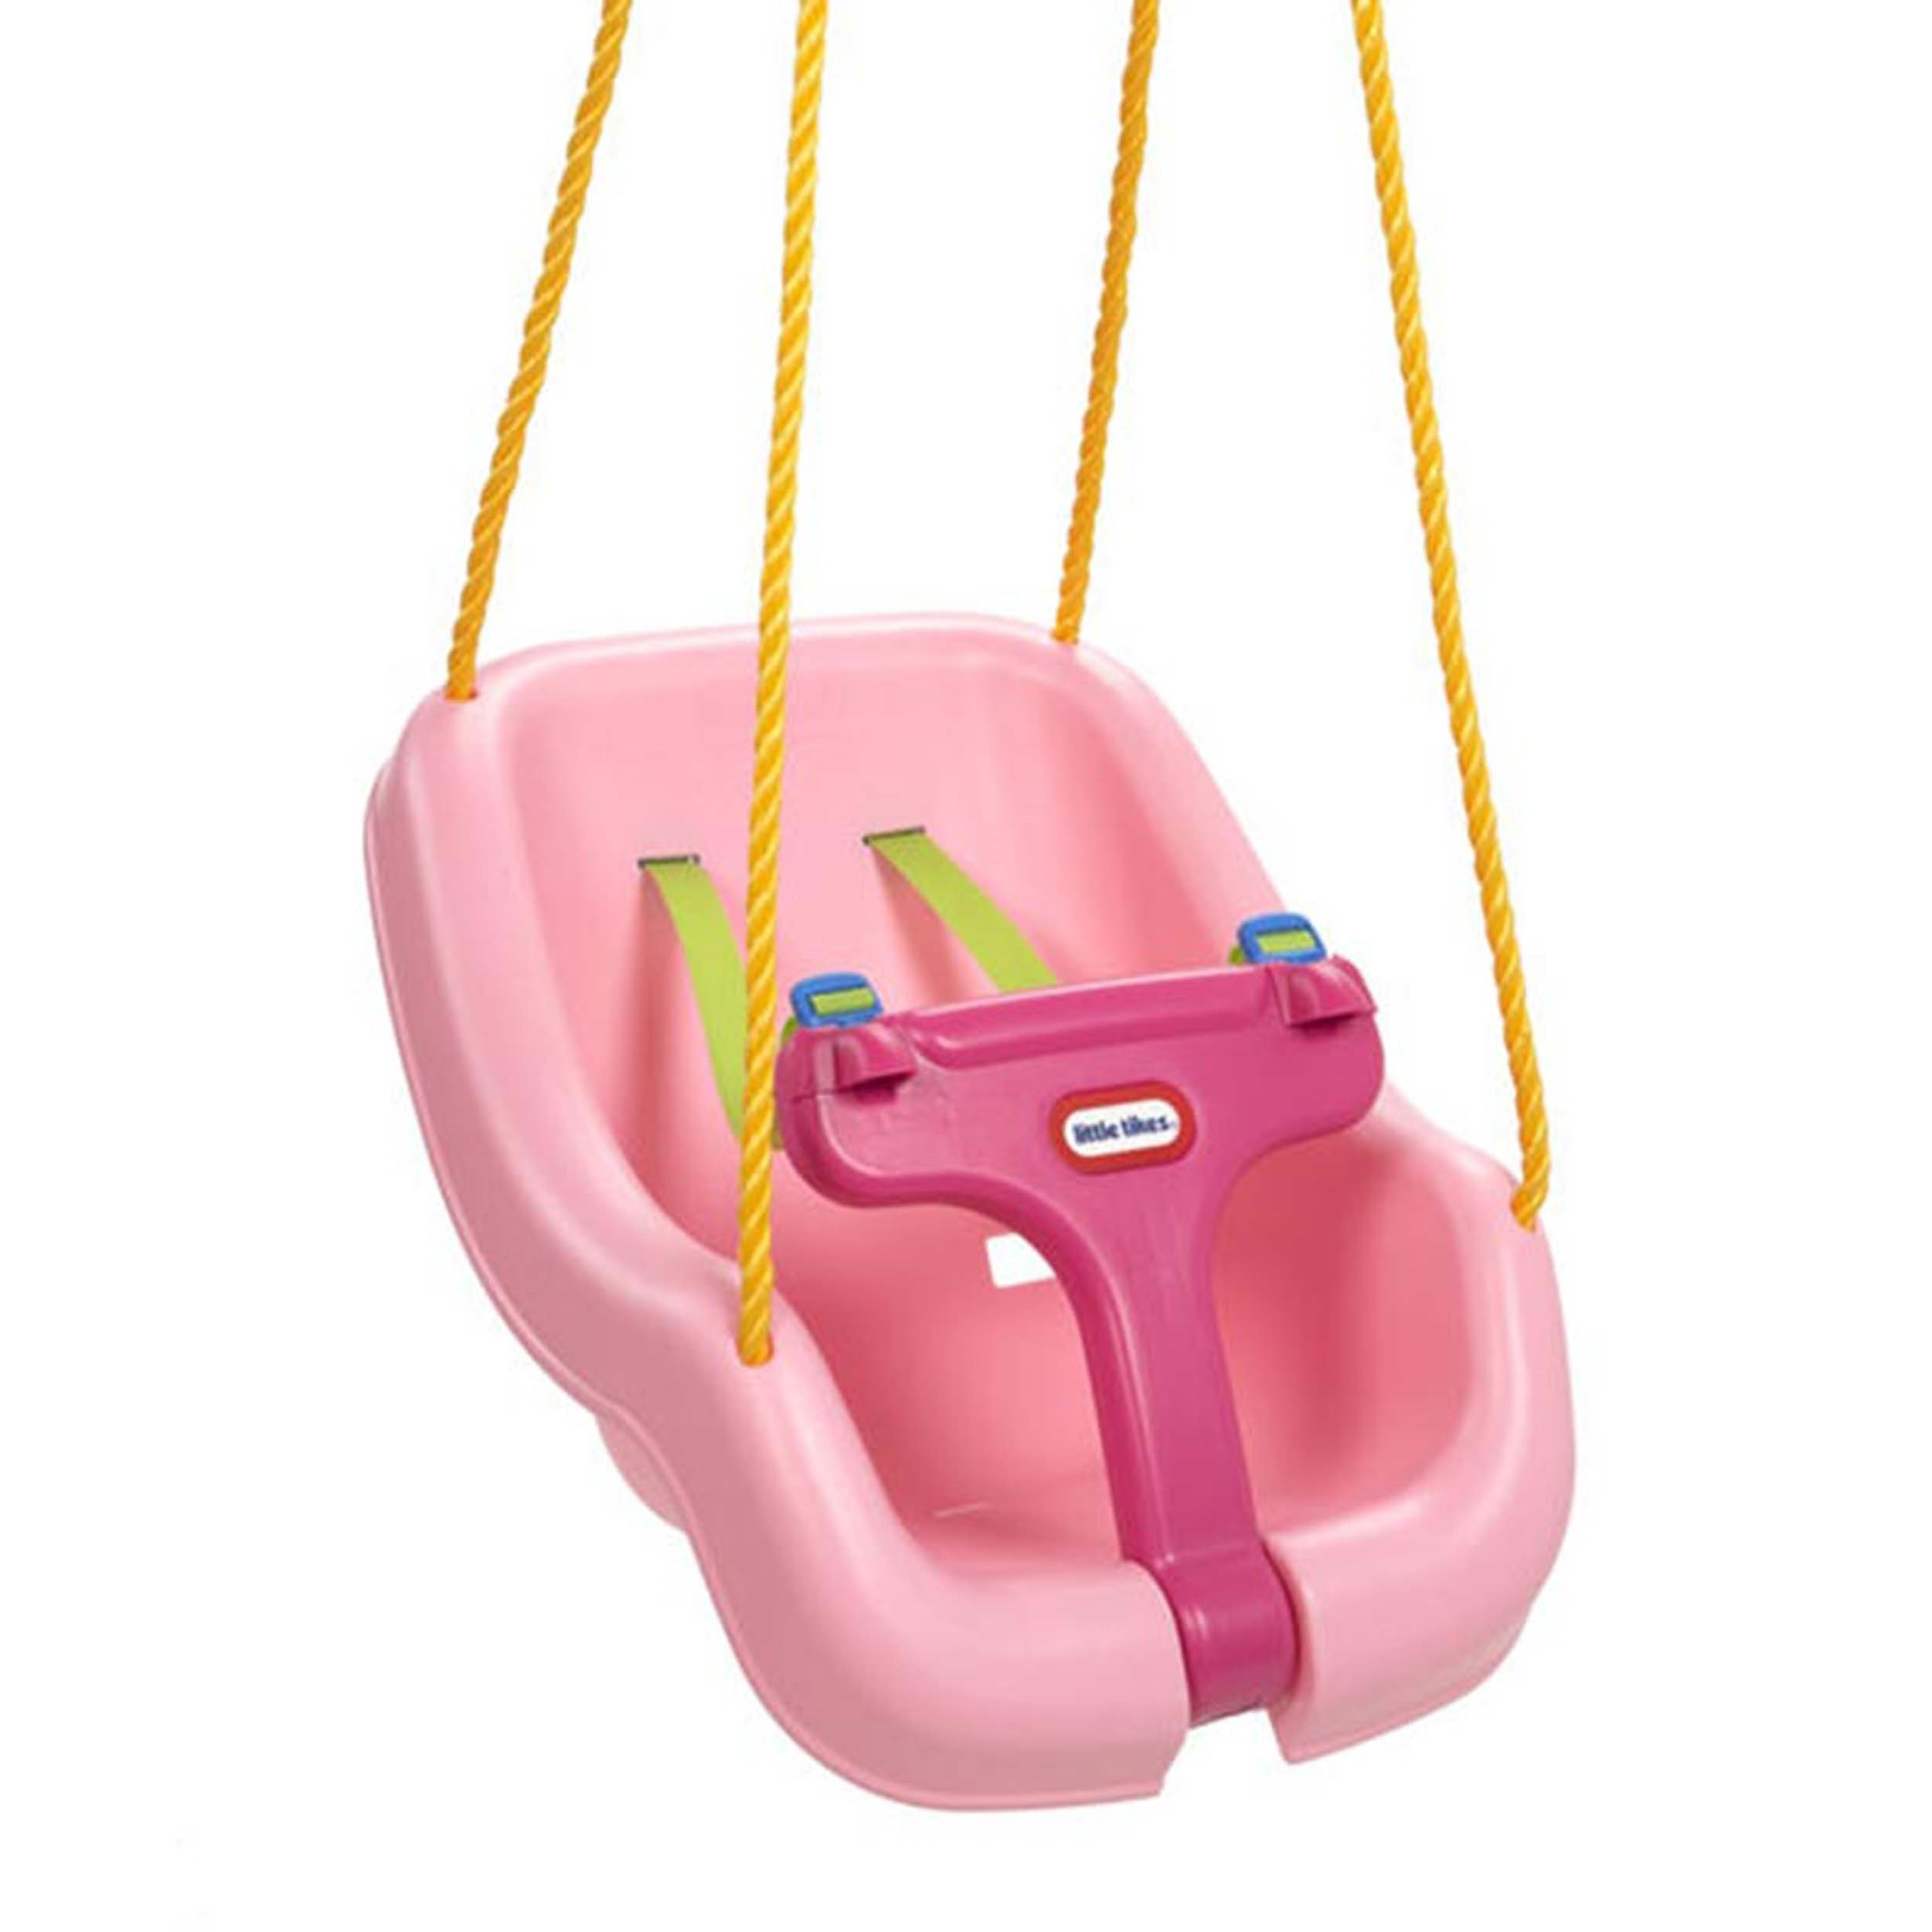 Little Tikes 2-in-1 Snug 'n Secure Swing Pink